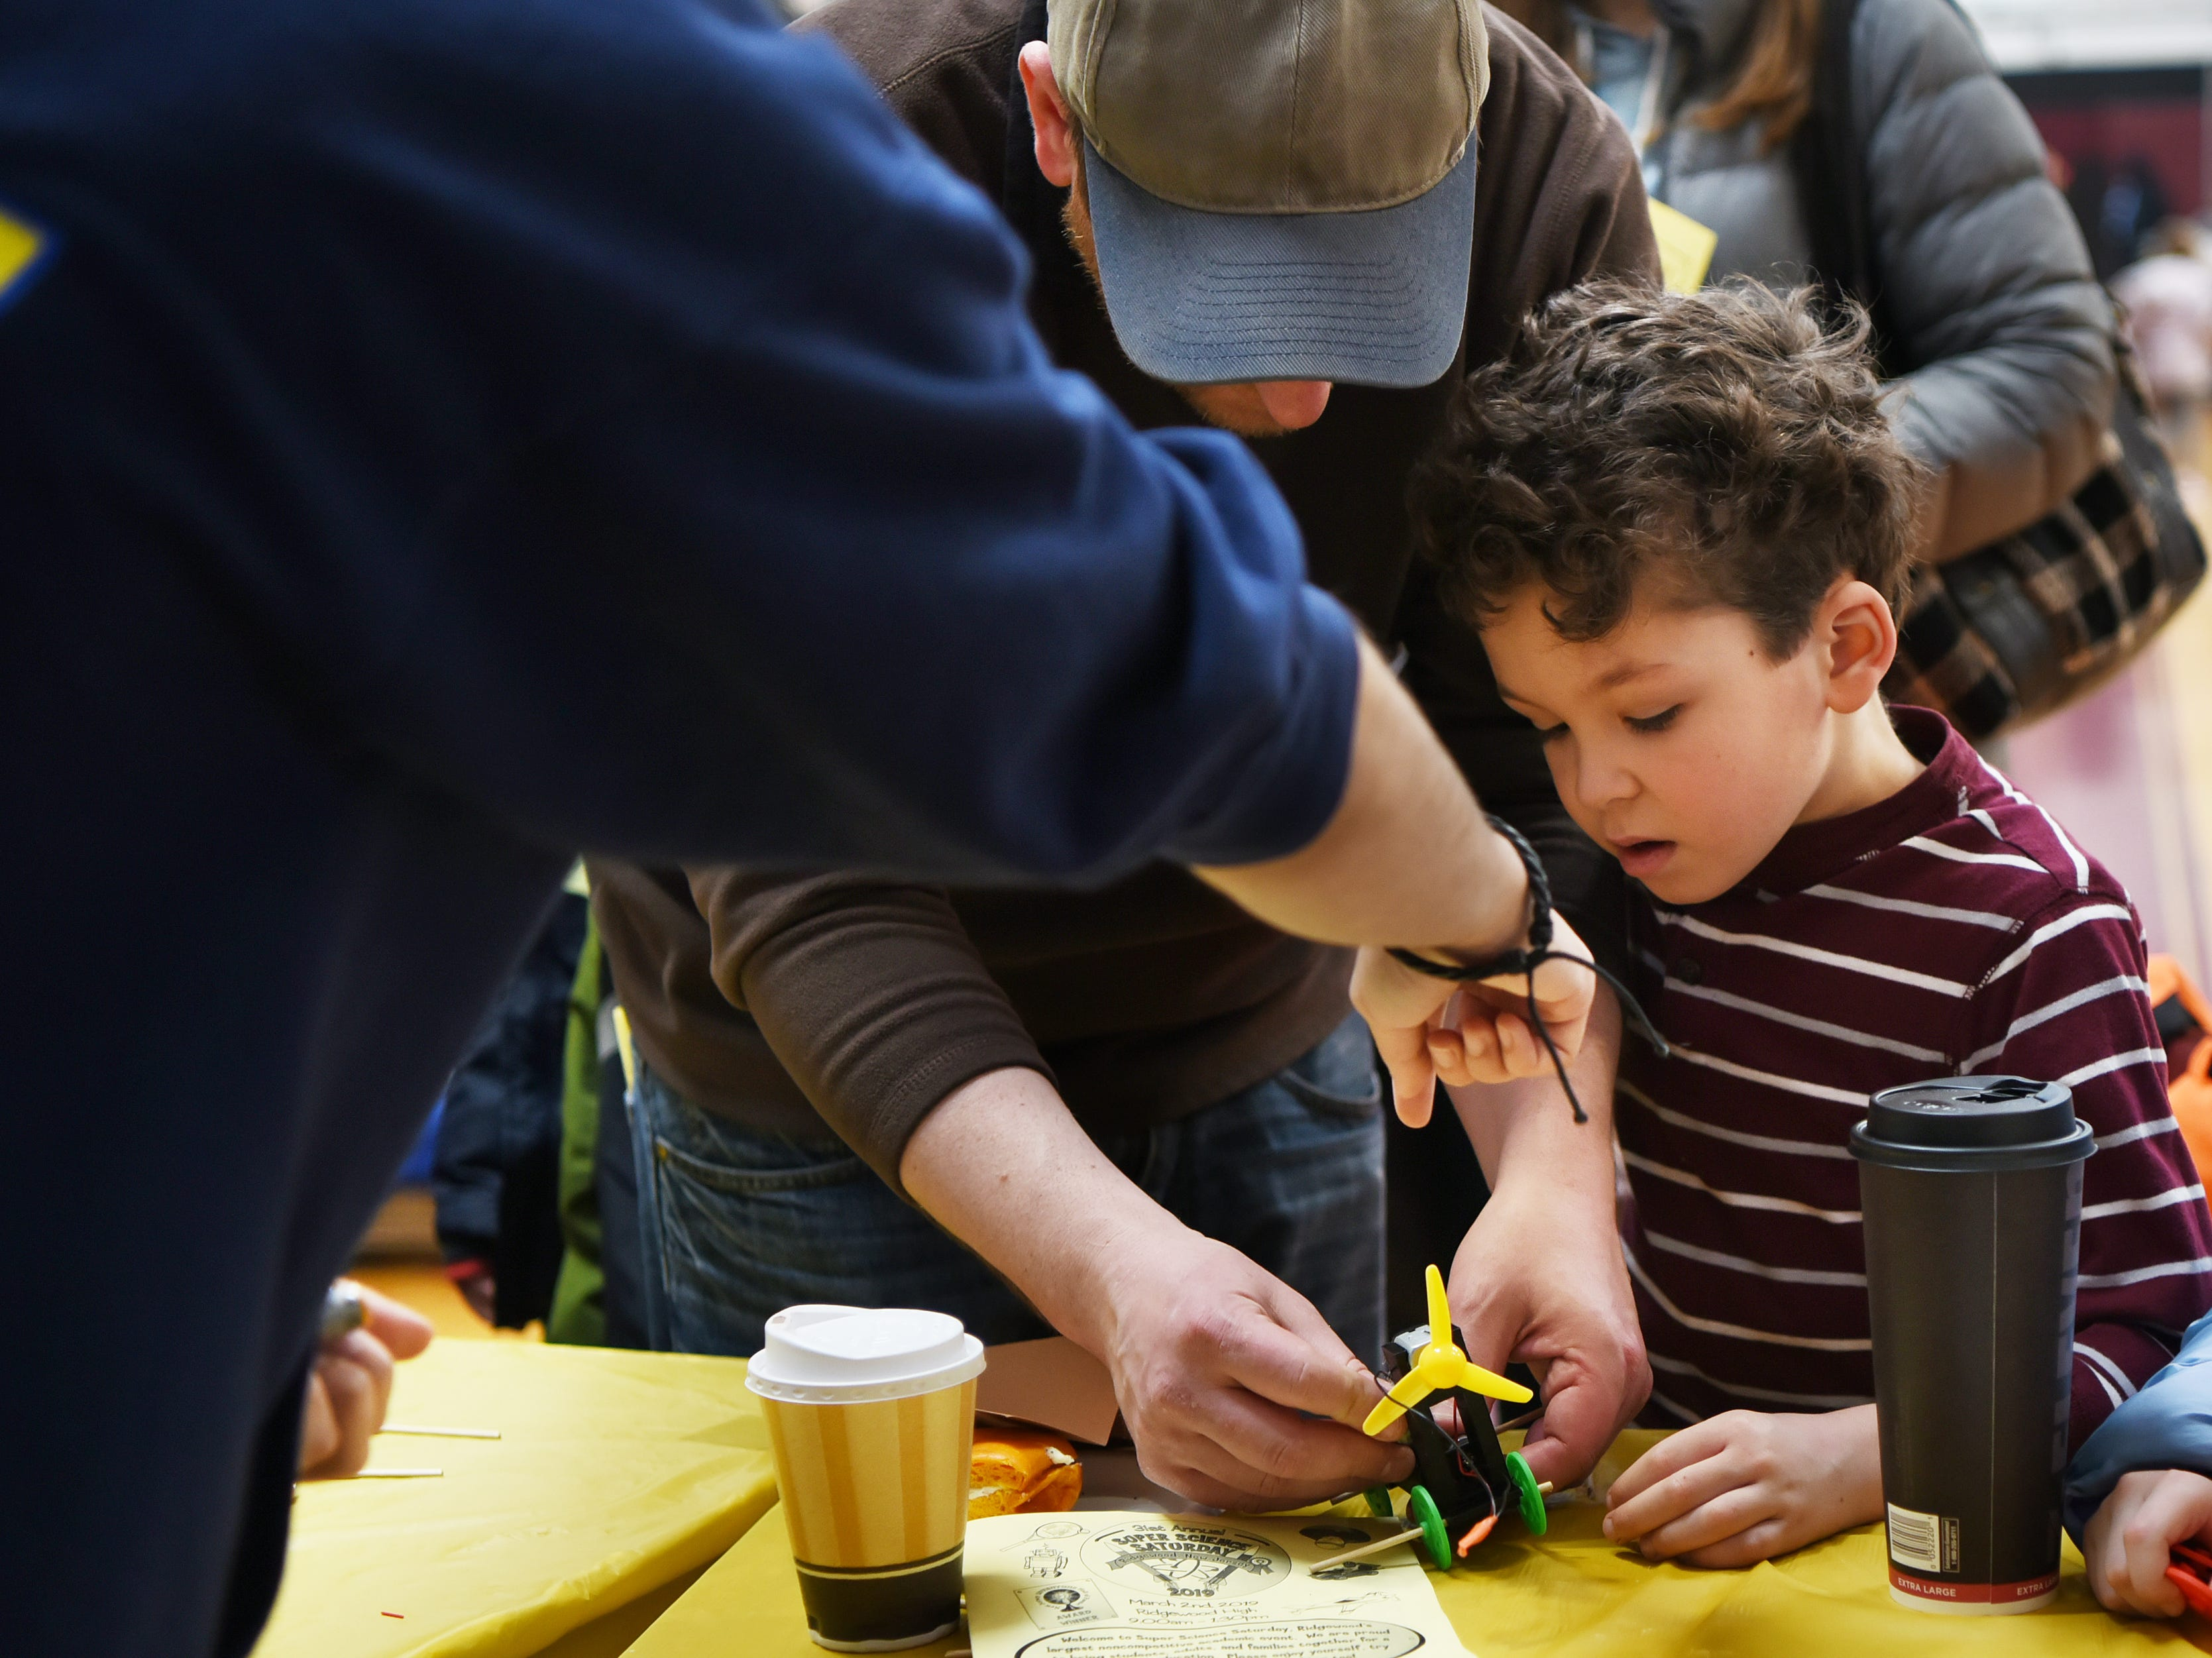 Jason Muzio, 7, creates a wind-powered electric car with some assistance. This is one of many activities during Super Science Saturday held at Ridgewood High School in Ridgewood on Saturday March 2, 2019.